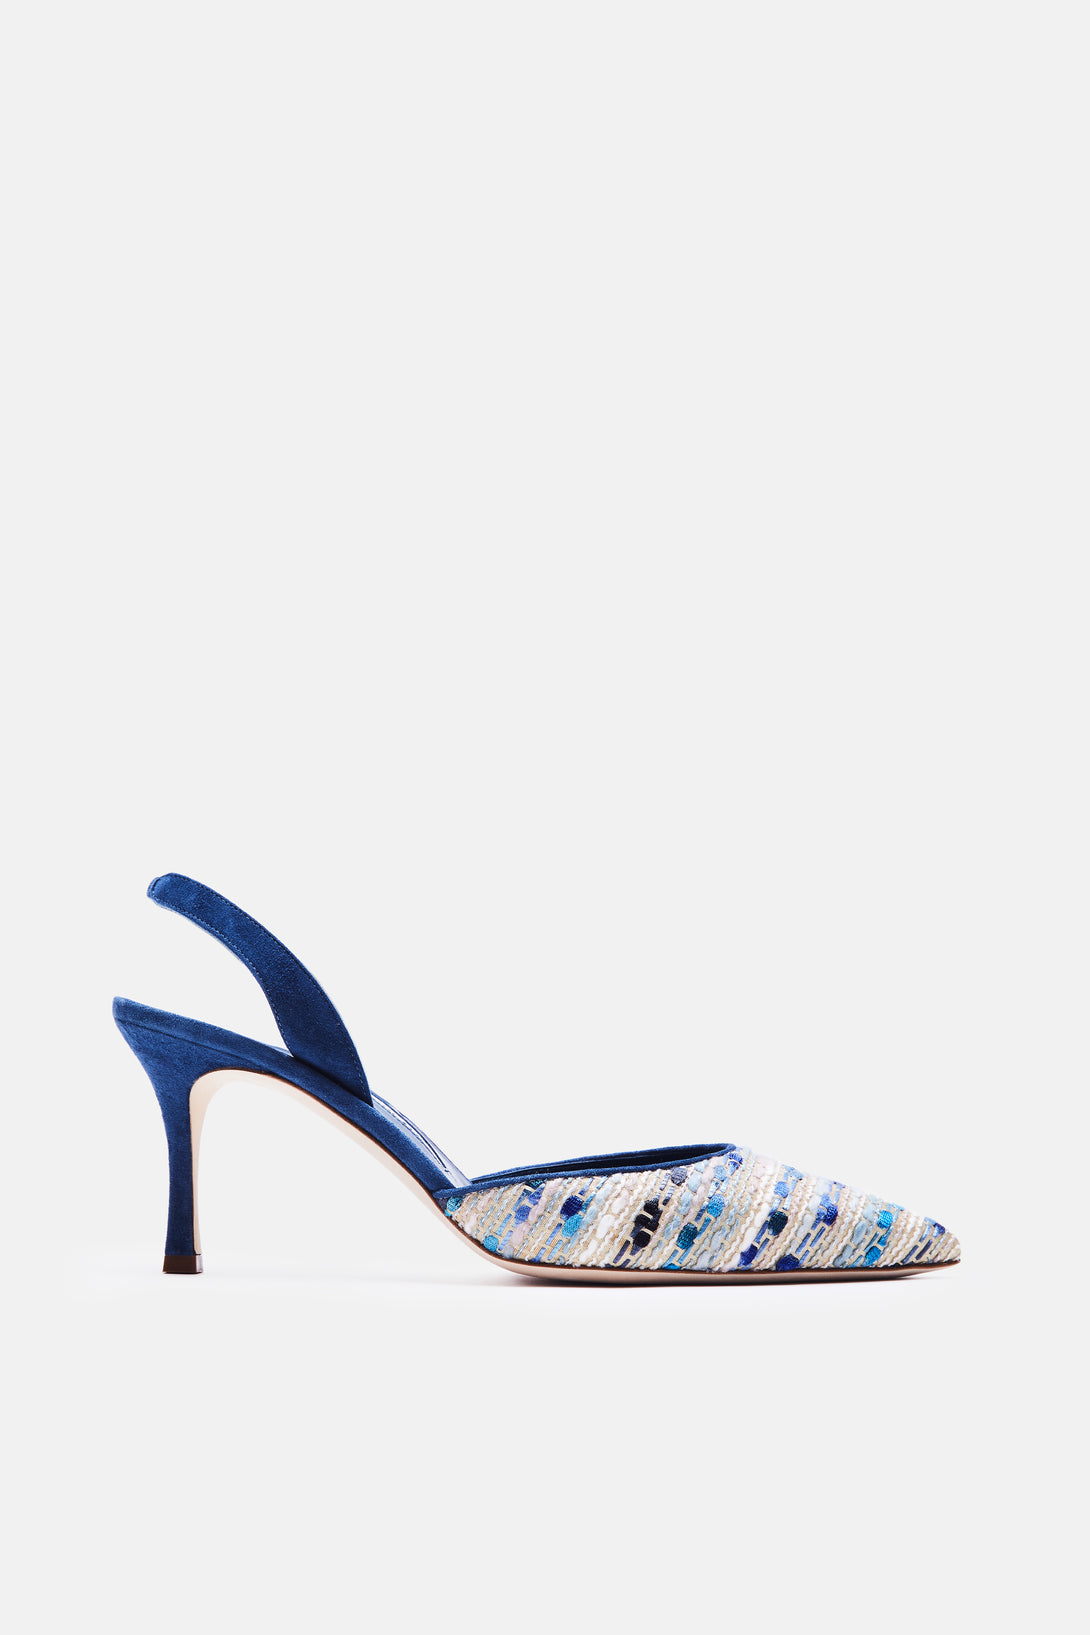 Carolyne Tweed Slingback - Blue Multi